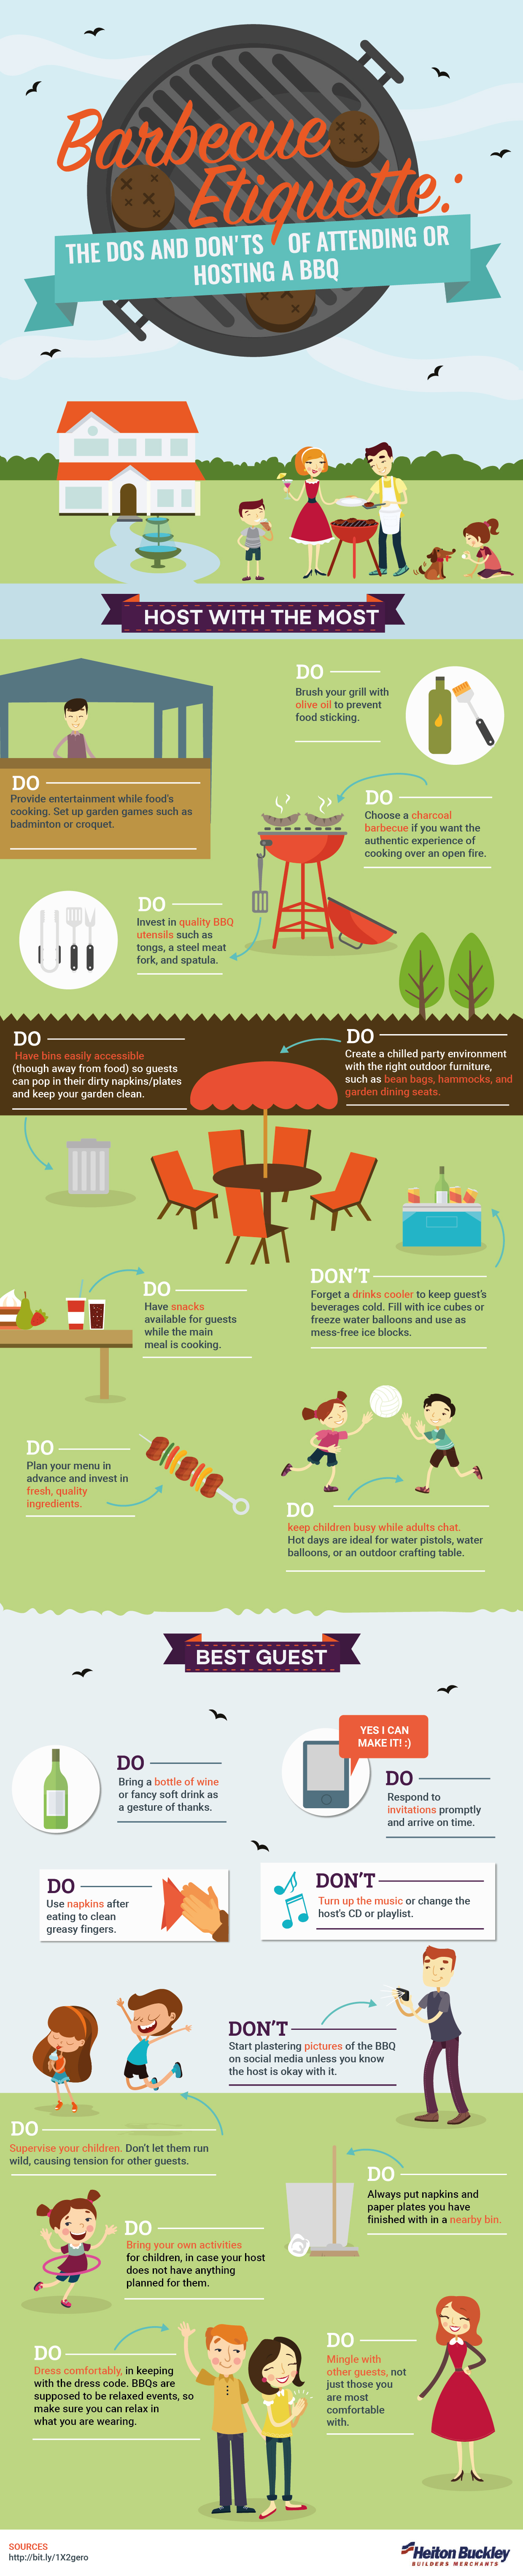 BBQ Etiquette: The Dos & Don'ts